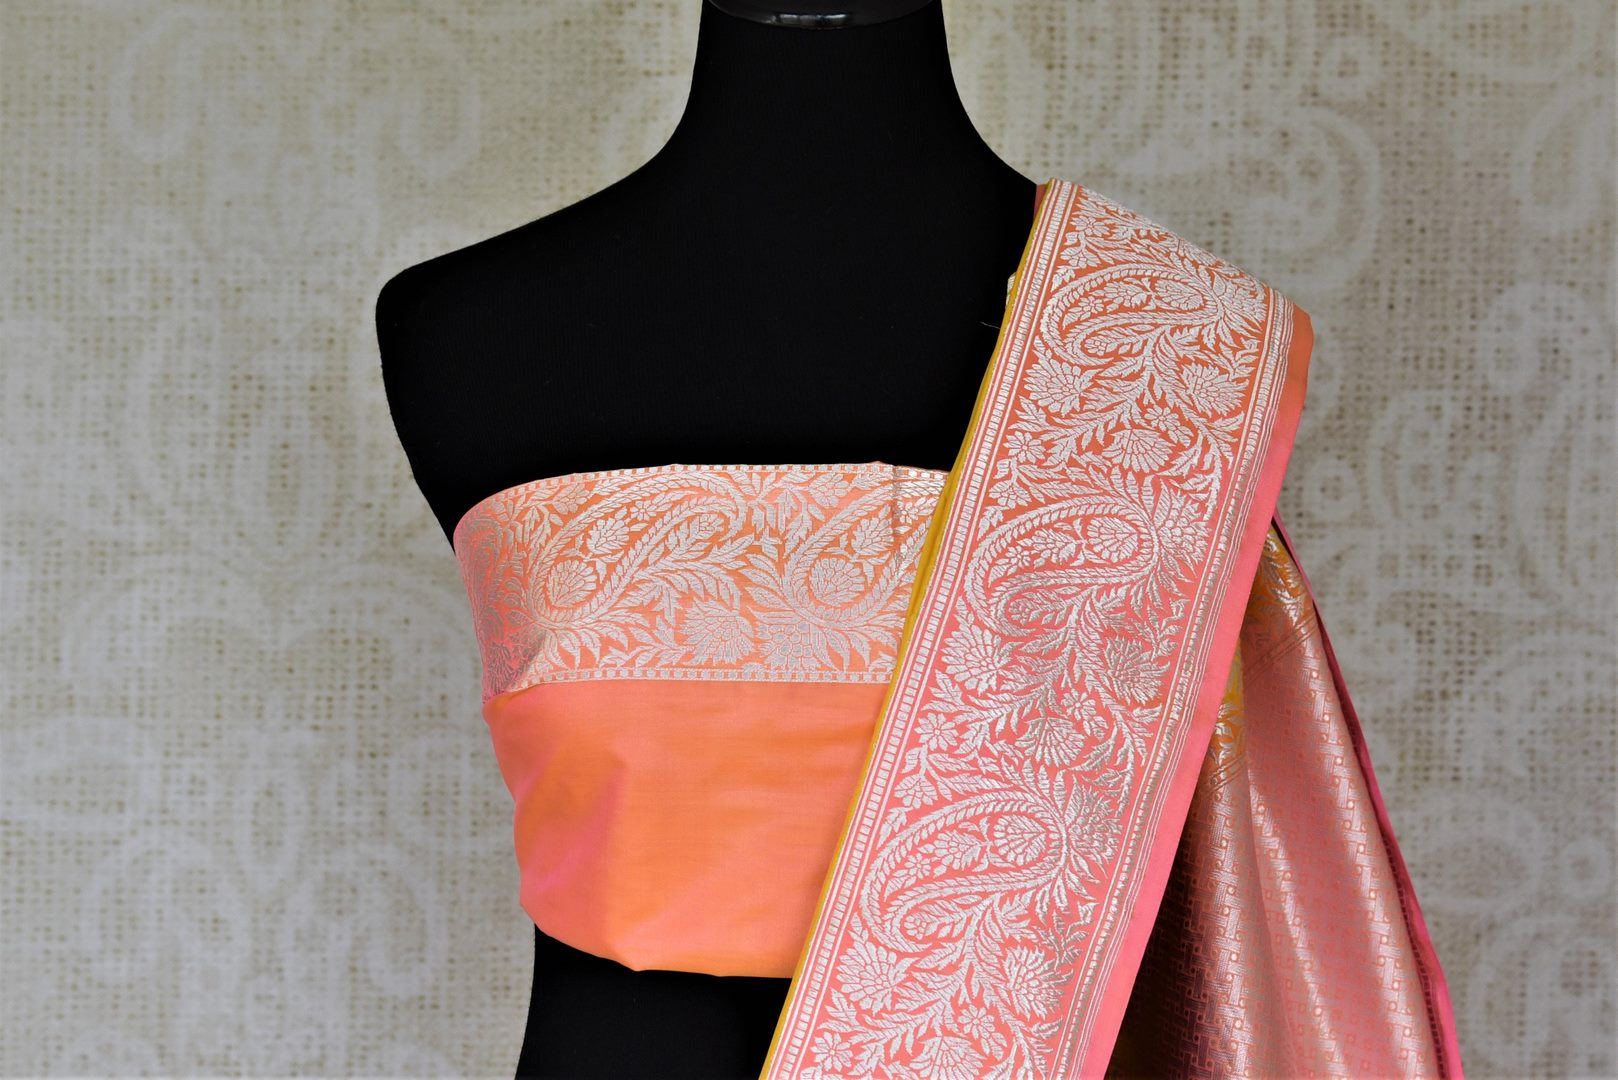 Buy charming yellow Banarasi silk saree online in USA with silver zari work on pink border. For Indian women in USA, Pure Elegance Indian fashion store brings an exquisite collection Banarasi sarees, Banarasi silk sarees, tussar sarees, zari work sarees, pure silk sarees all under one roof. Shop online now.-blouse pallu